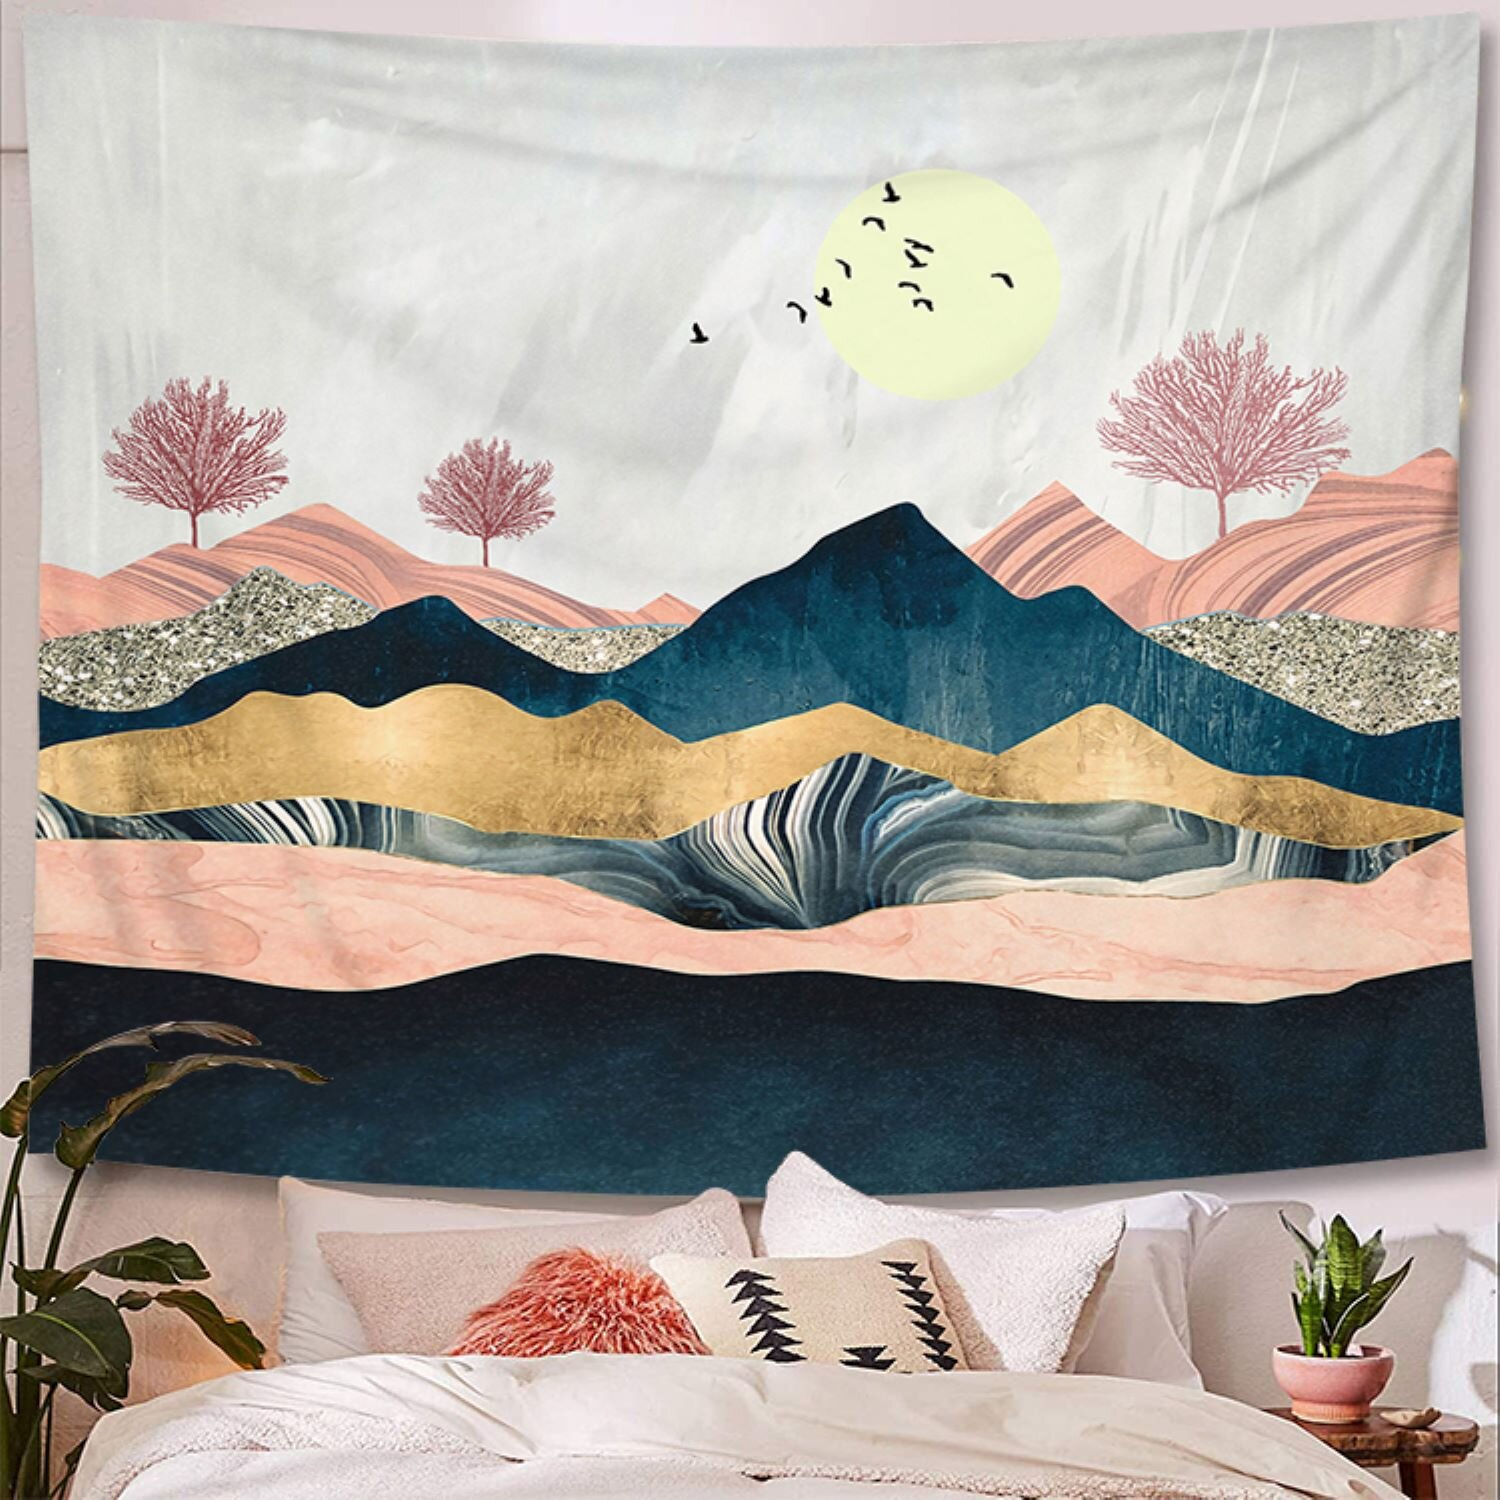 Landscape Waterfall Tapestry New Room Wall Hanging Tapestries Home Dorm Decor LB